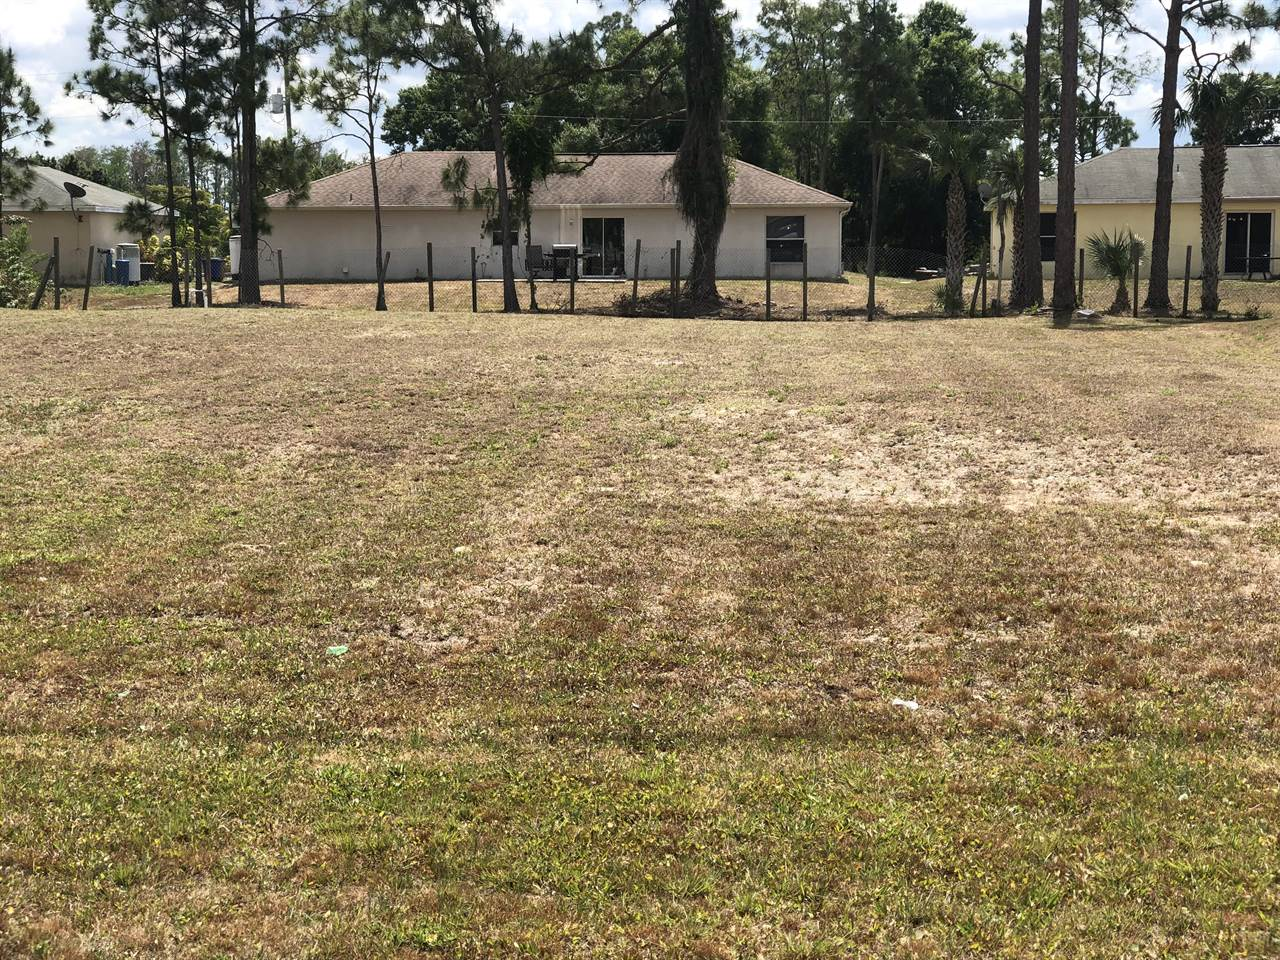 115 Greenbriar Blvd, Lehigh Acres, FL 33972